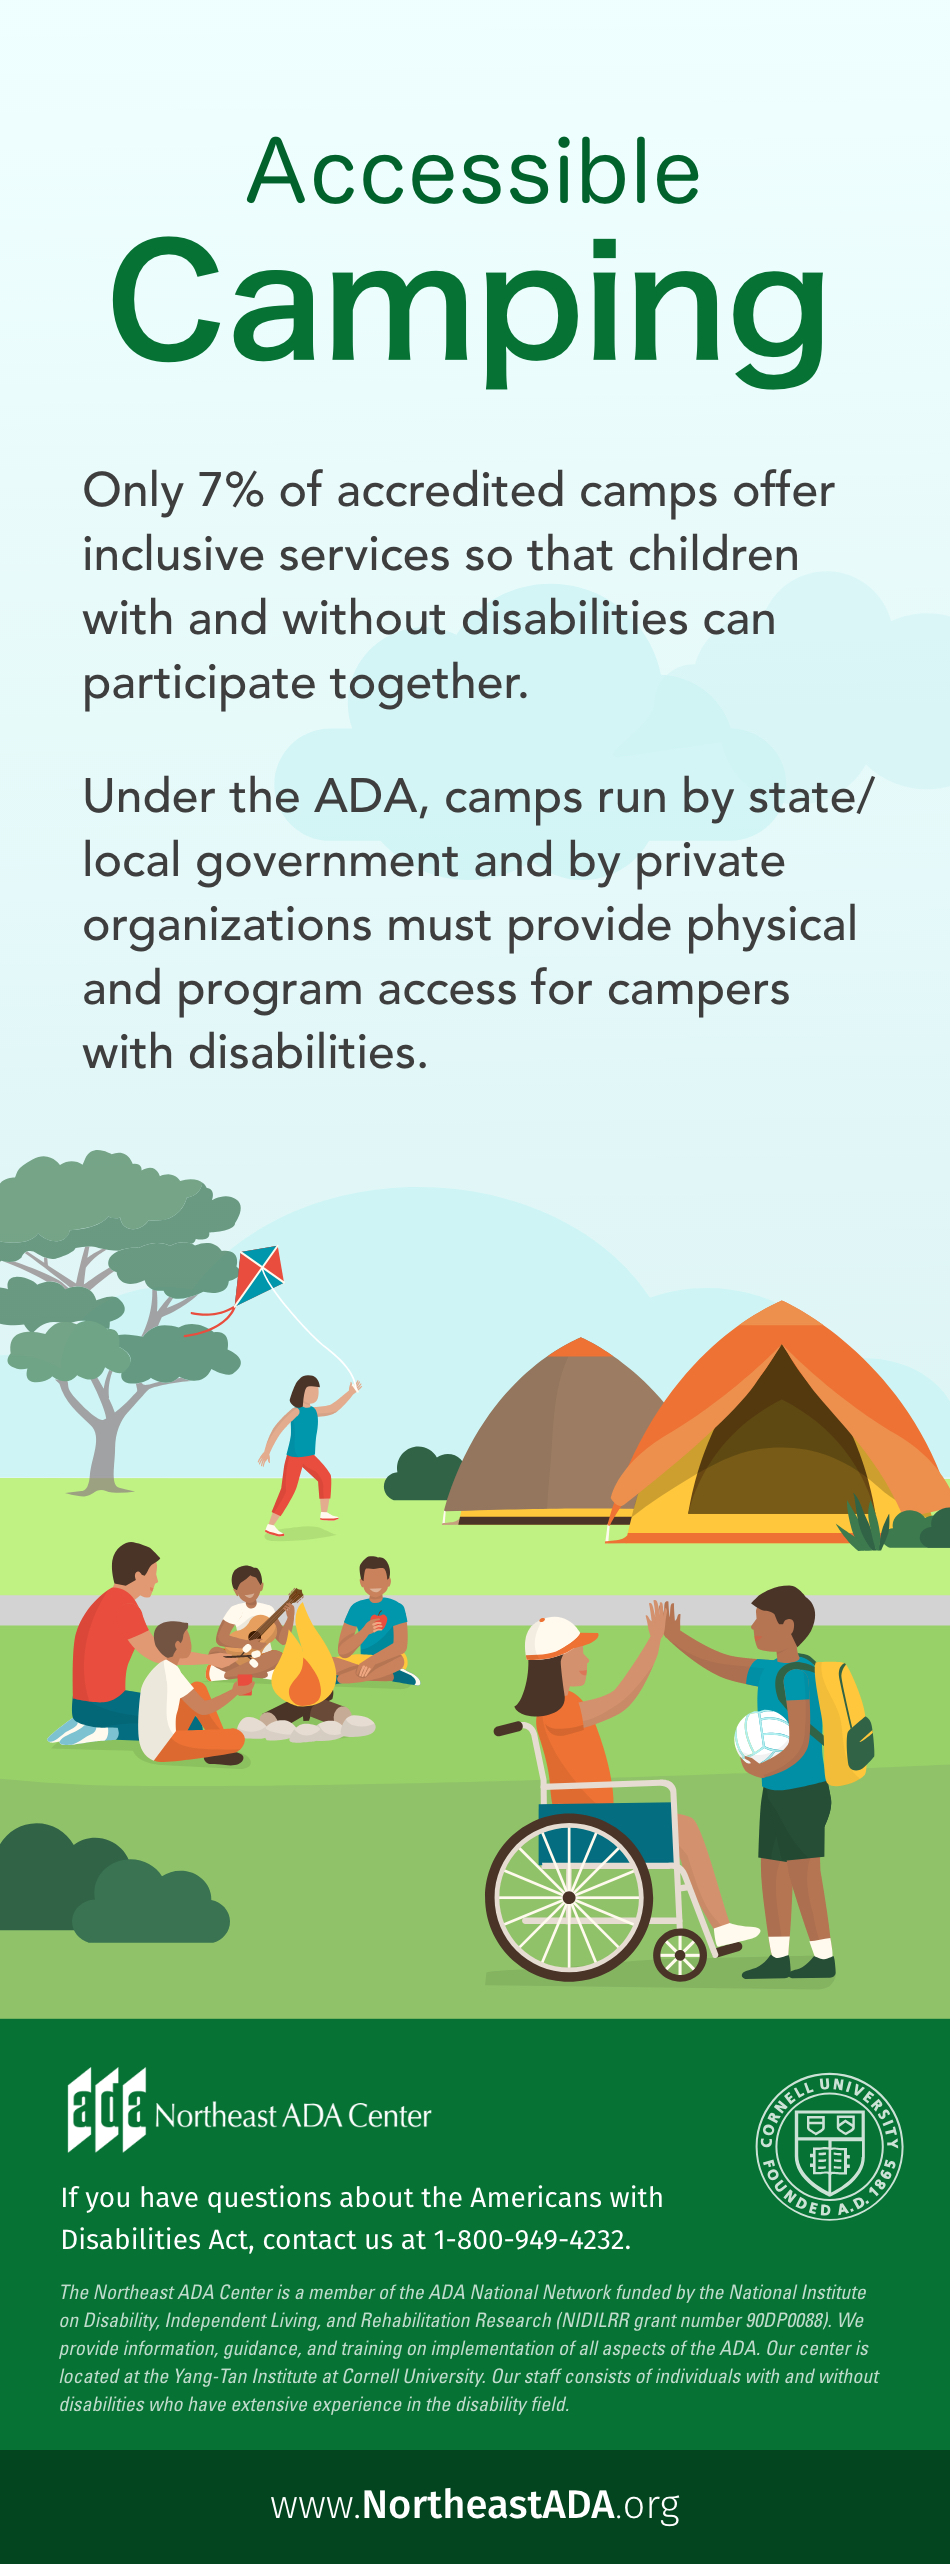 Infographic titled 'Accessible Camping': Only 7% of accredited camps offer inclusive services so that children with and without disabilities can participate together. Under the ADA, campus run by state/local government and by private organizations must provide physical and program access for campers with disabilities.